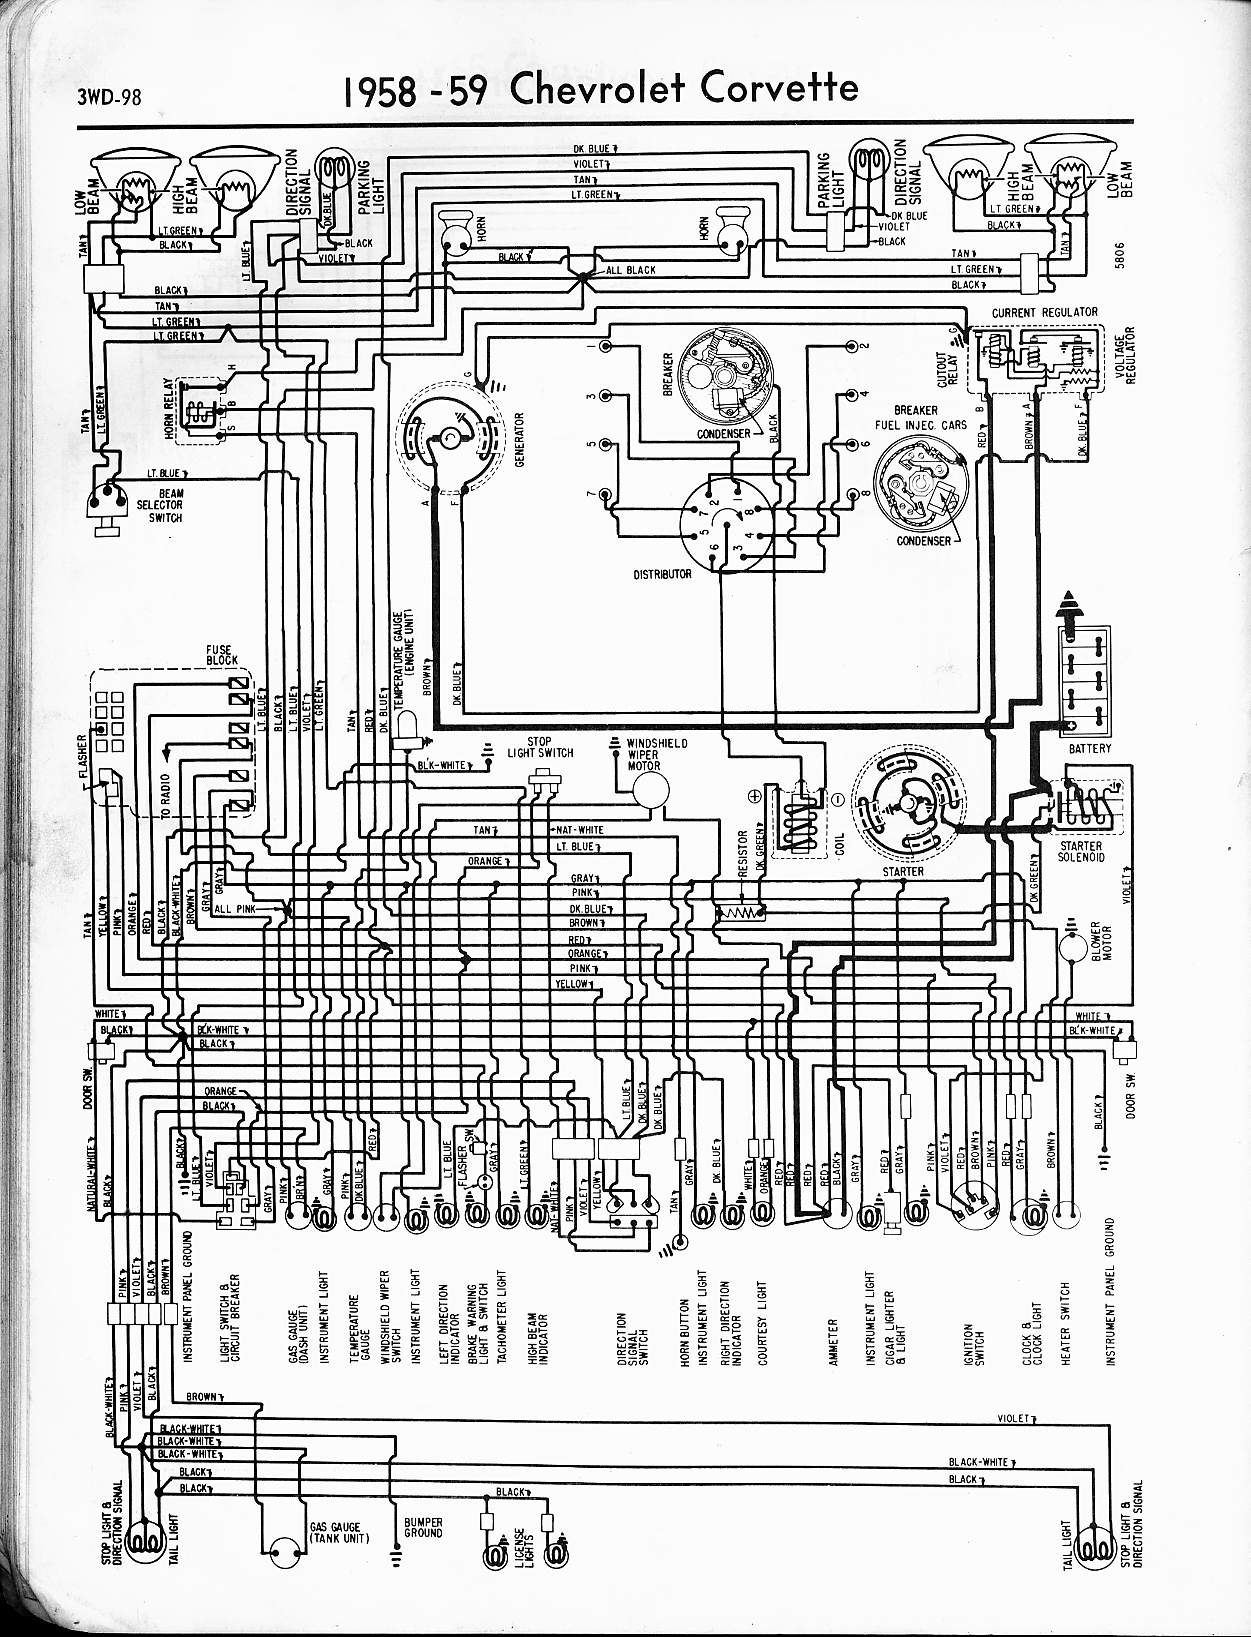 3000gt Engine Bay Diagram Corvette Wiring List Of Schematic Circuit 57 65 Chevy Diagrams Rh Oldcarmanualproject Com 1977 C4